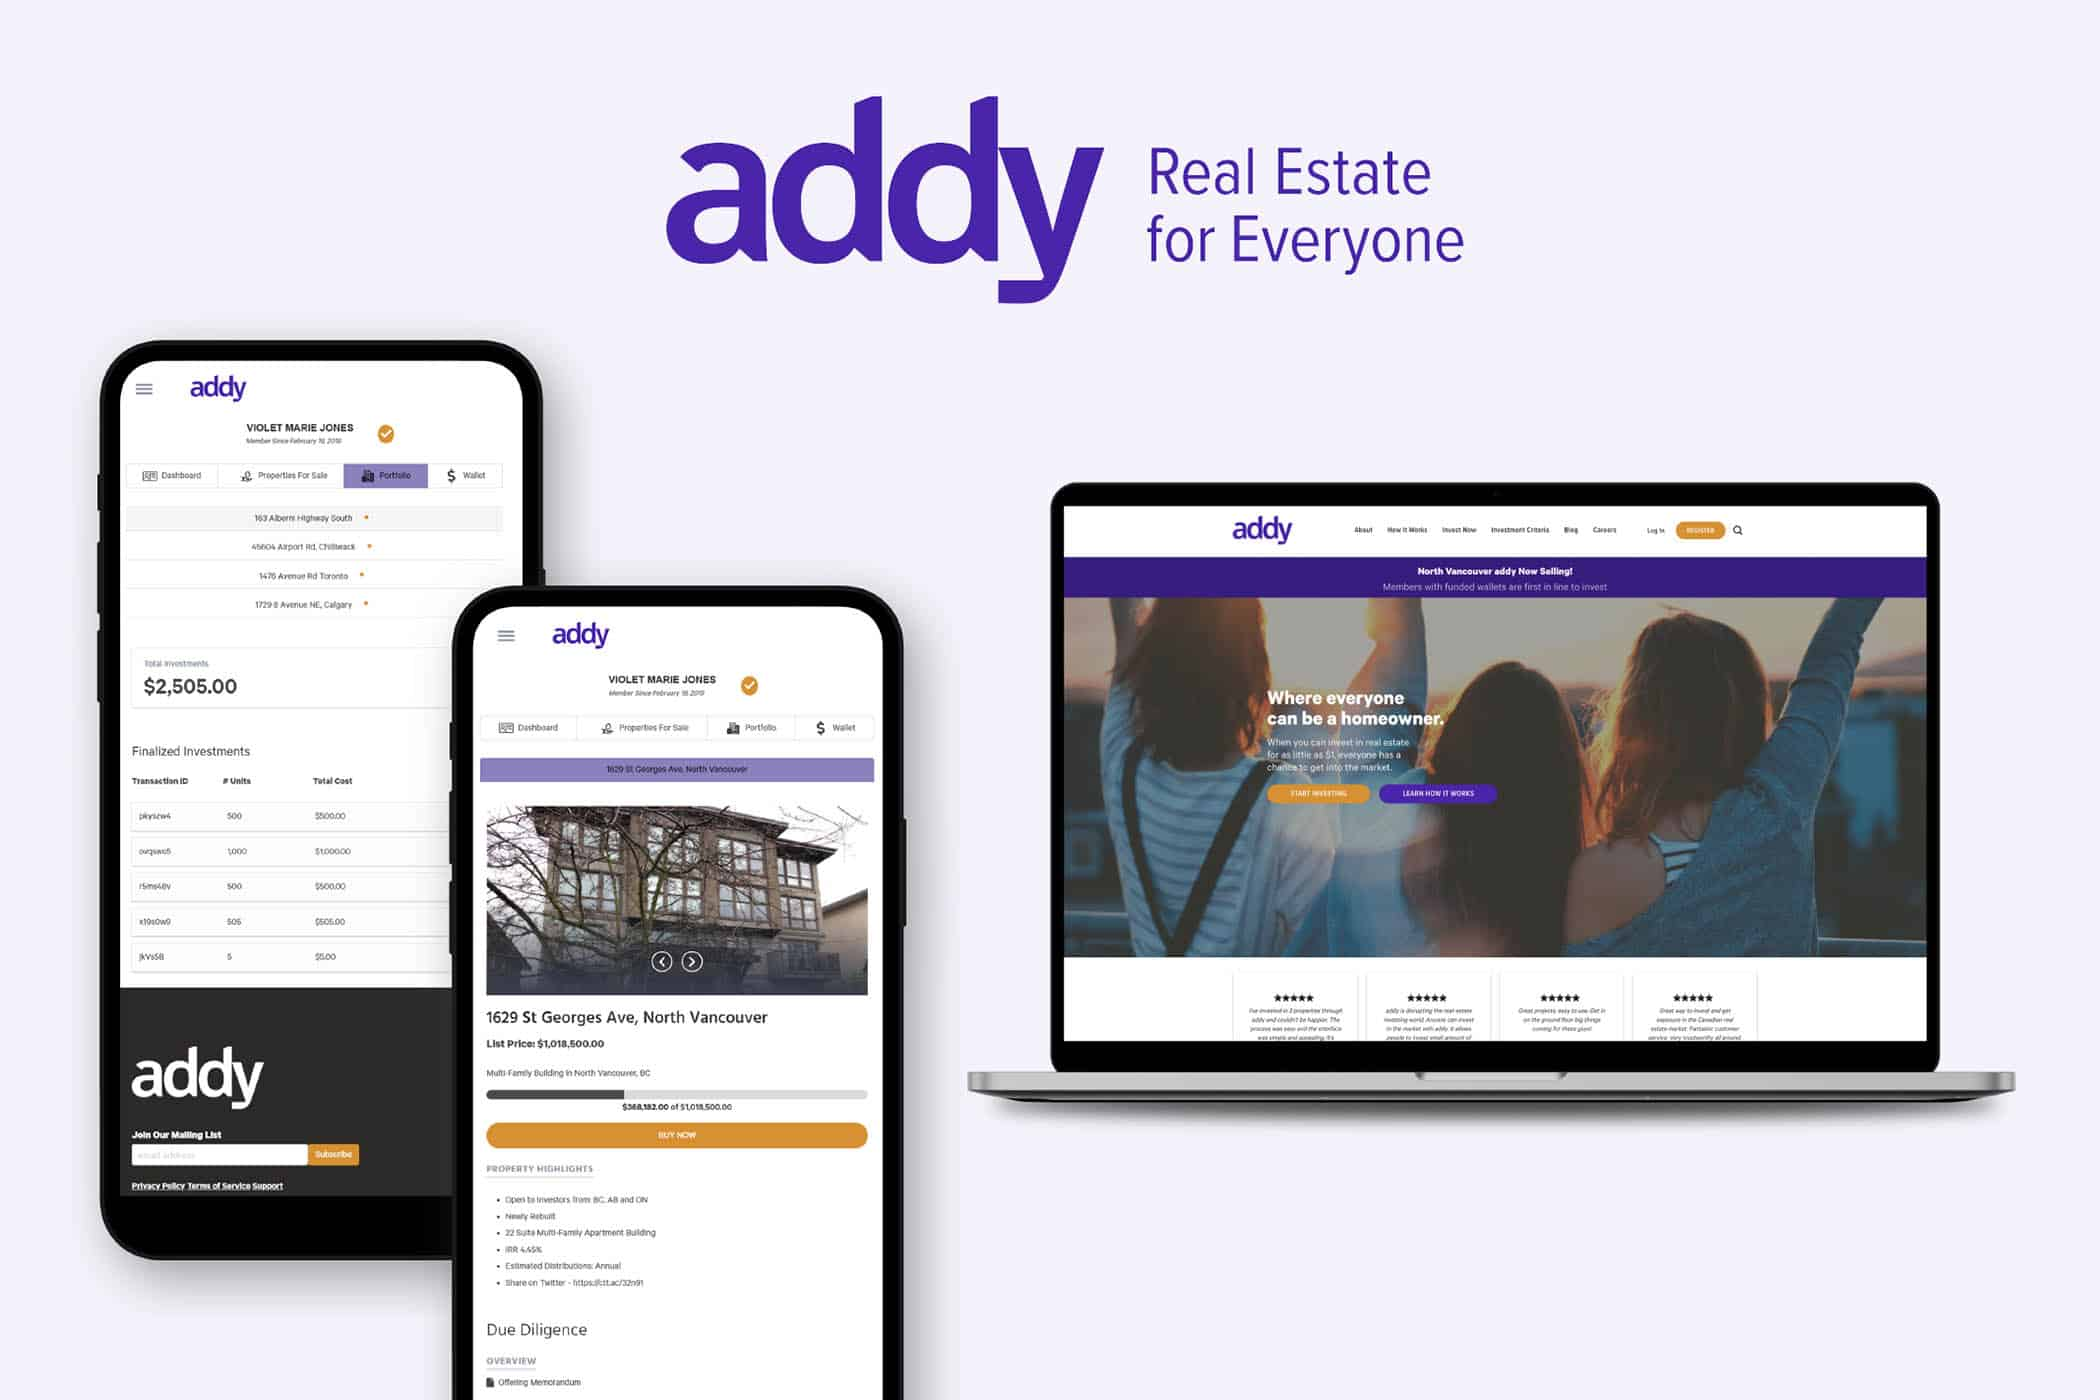 addy graphic - comparewise